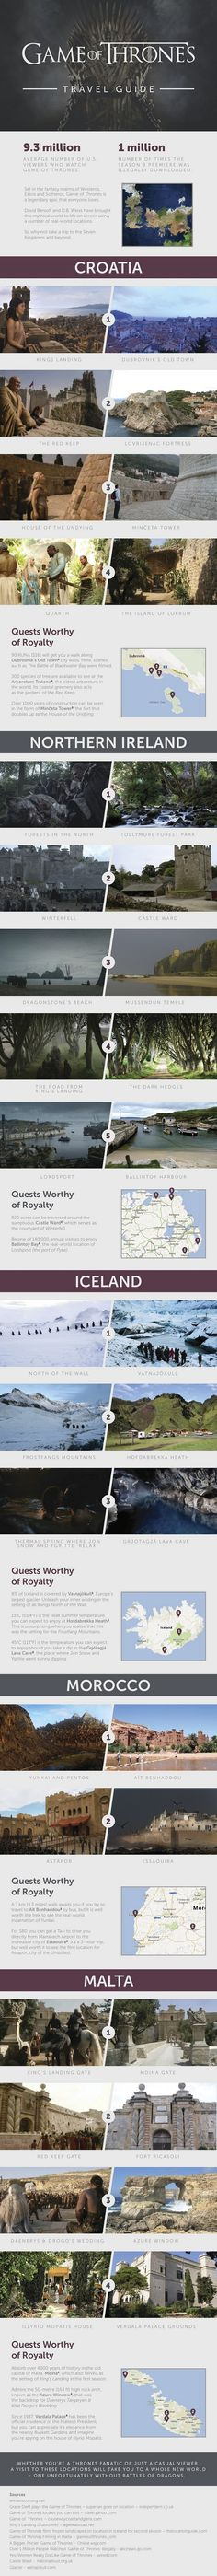 #GameofThrones travel infographic